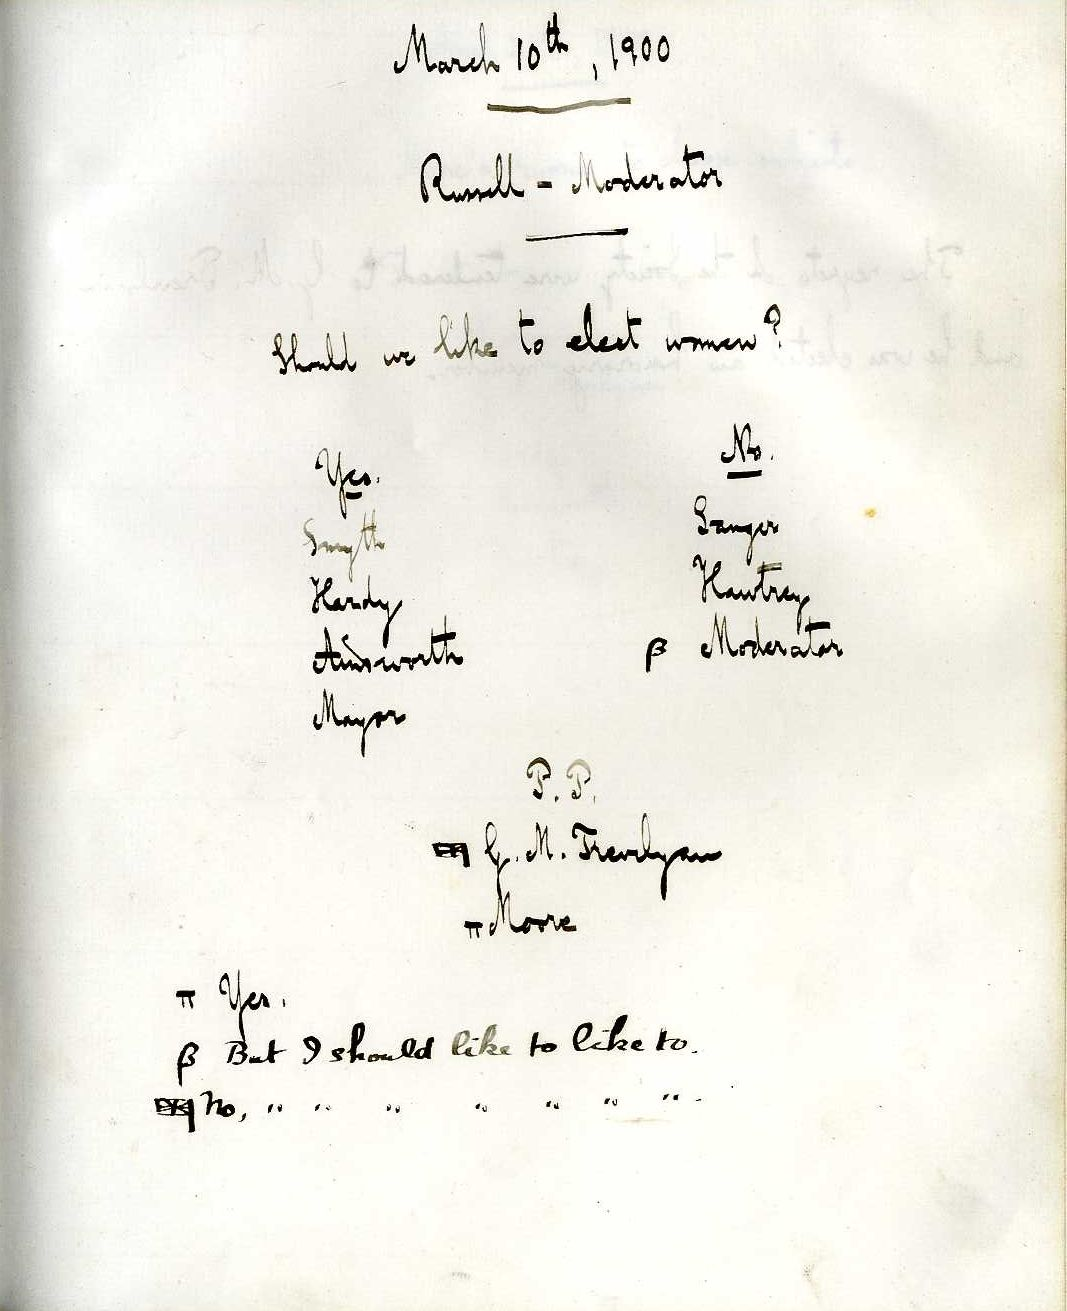 Minutes of a meeting in which Bertrand Russell asked 'Should we like to elect women?' [KCAS/39/1/13, 10 March 1900]